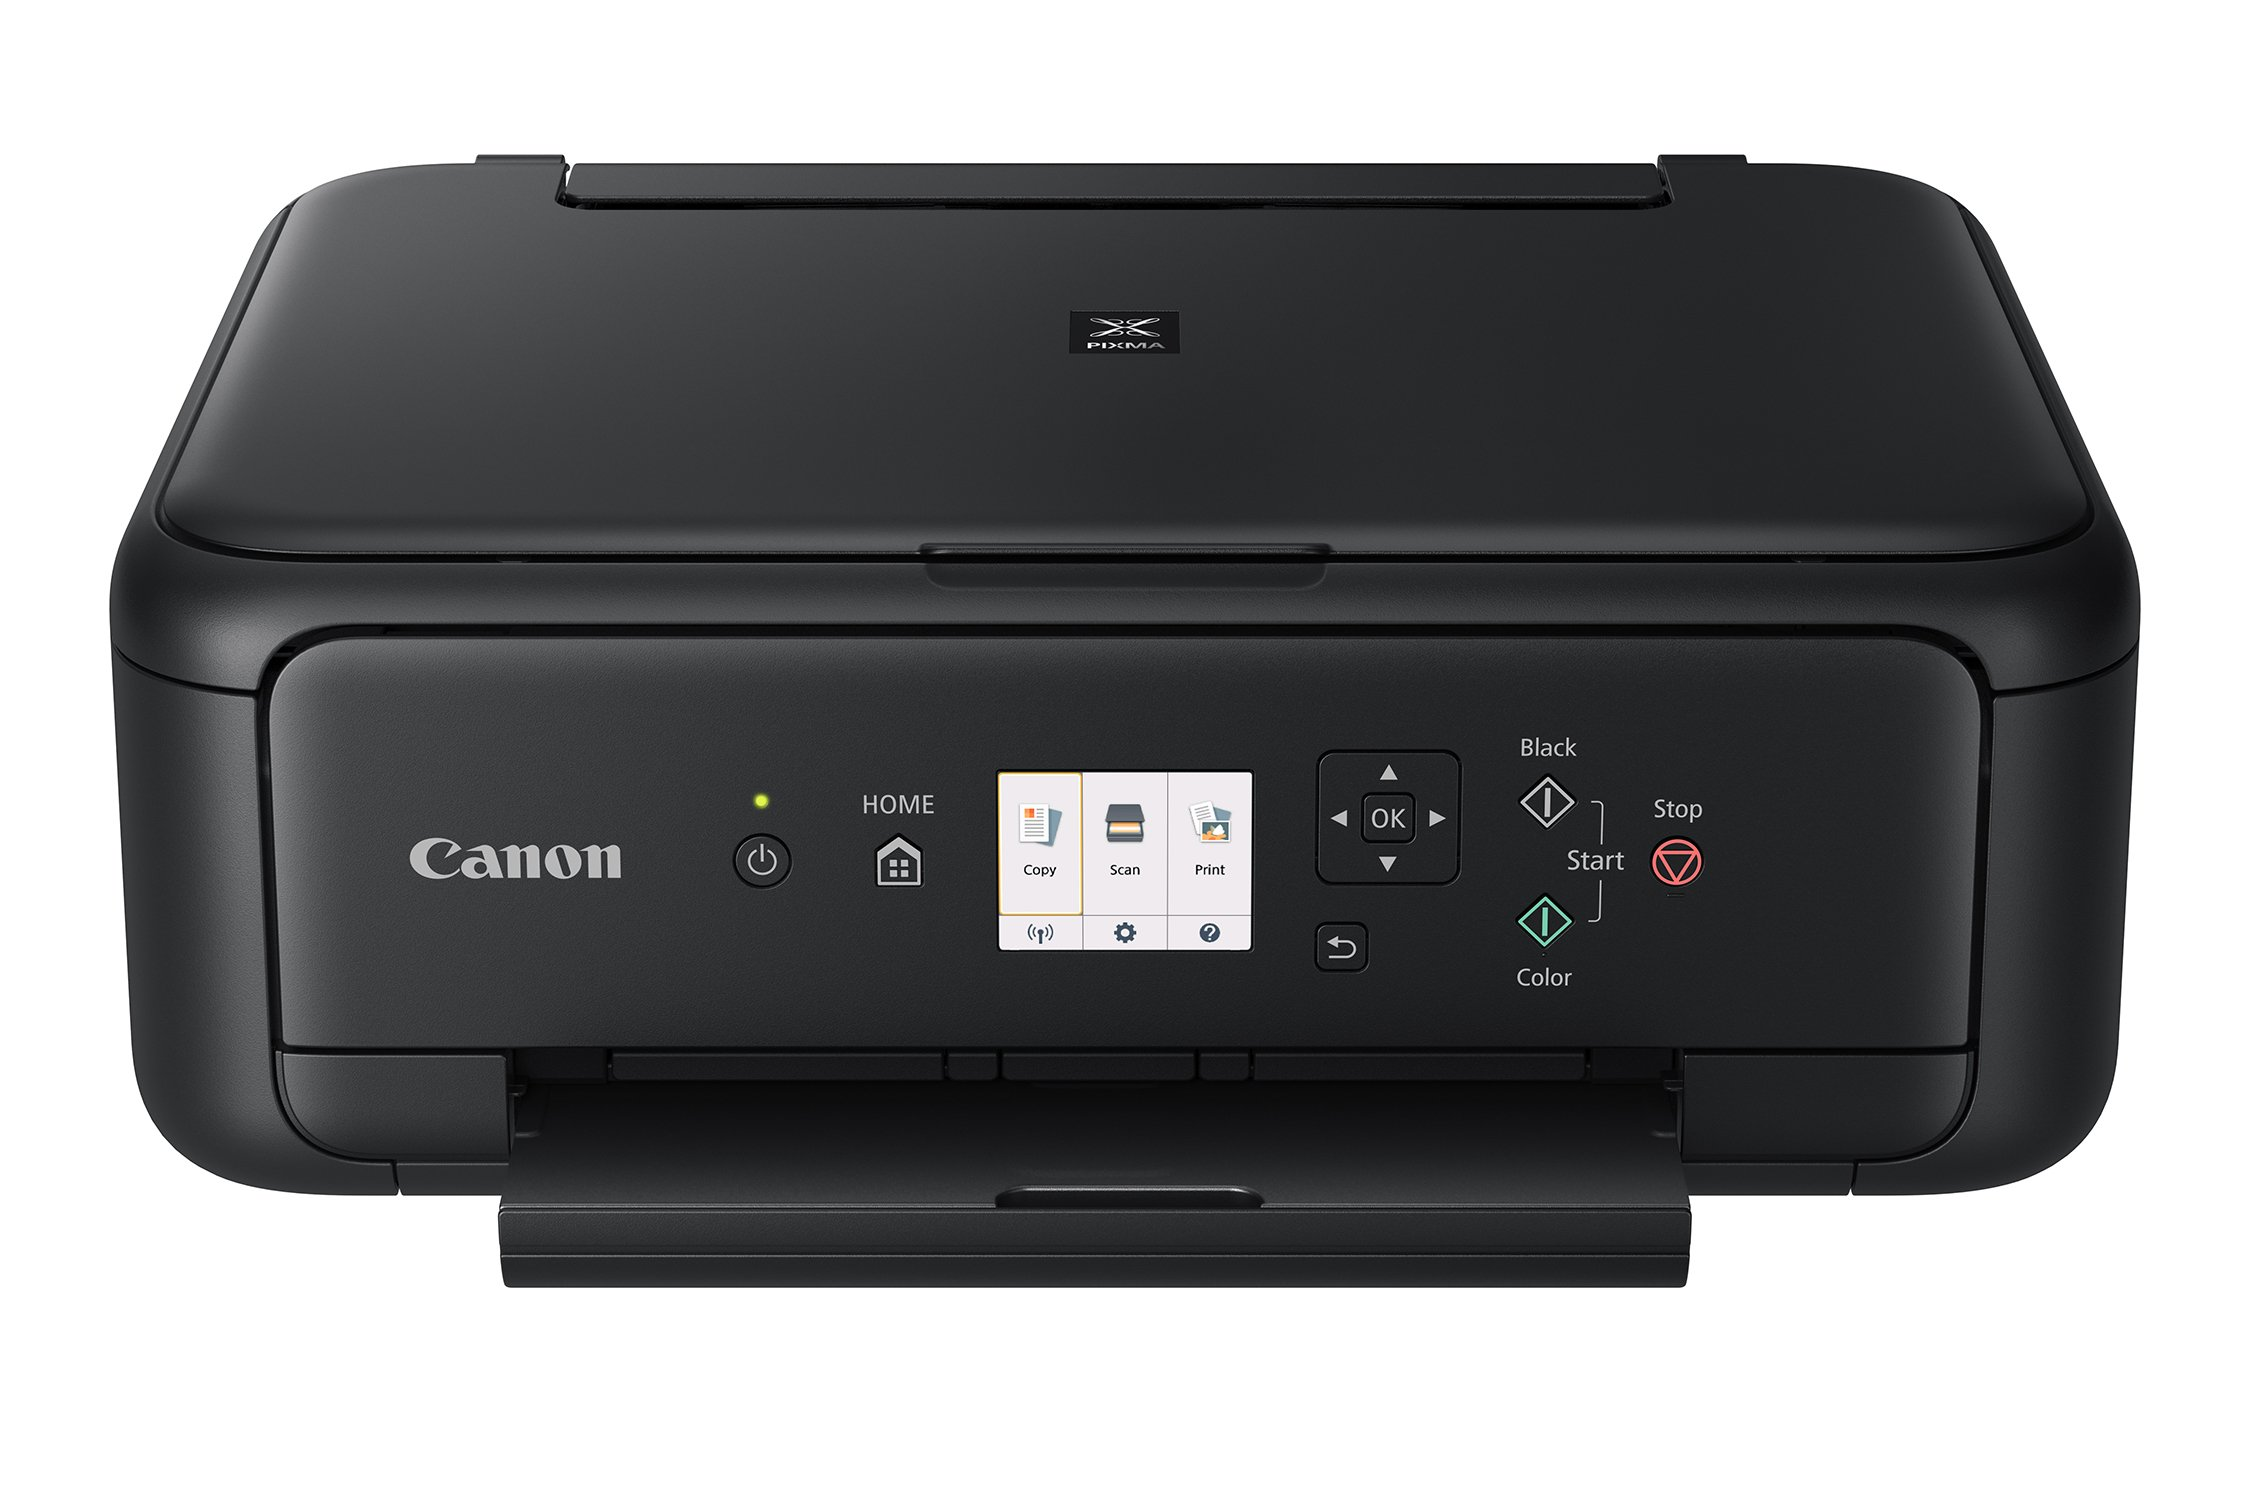 Canon TS5120 Wireless All-In-One Printer with Scanner and Copier: Mobile and Tablet Printing, with Airprint(TM) and Google Cloud Print compatible, Black by Canon (Image #6)